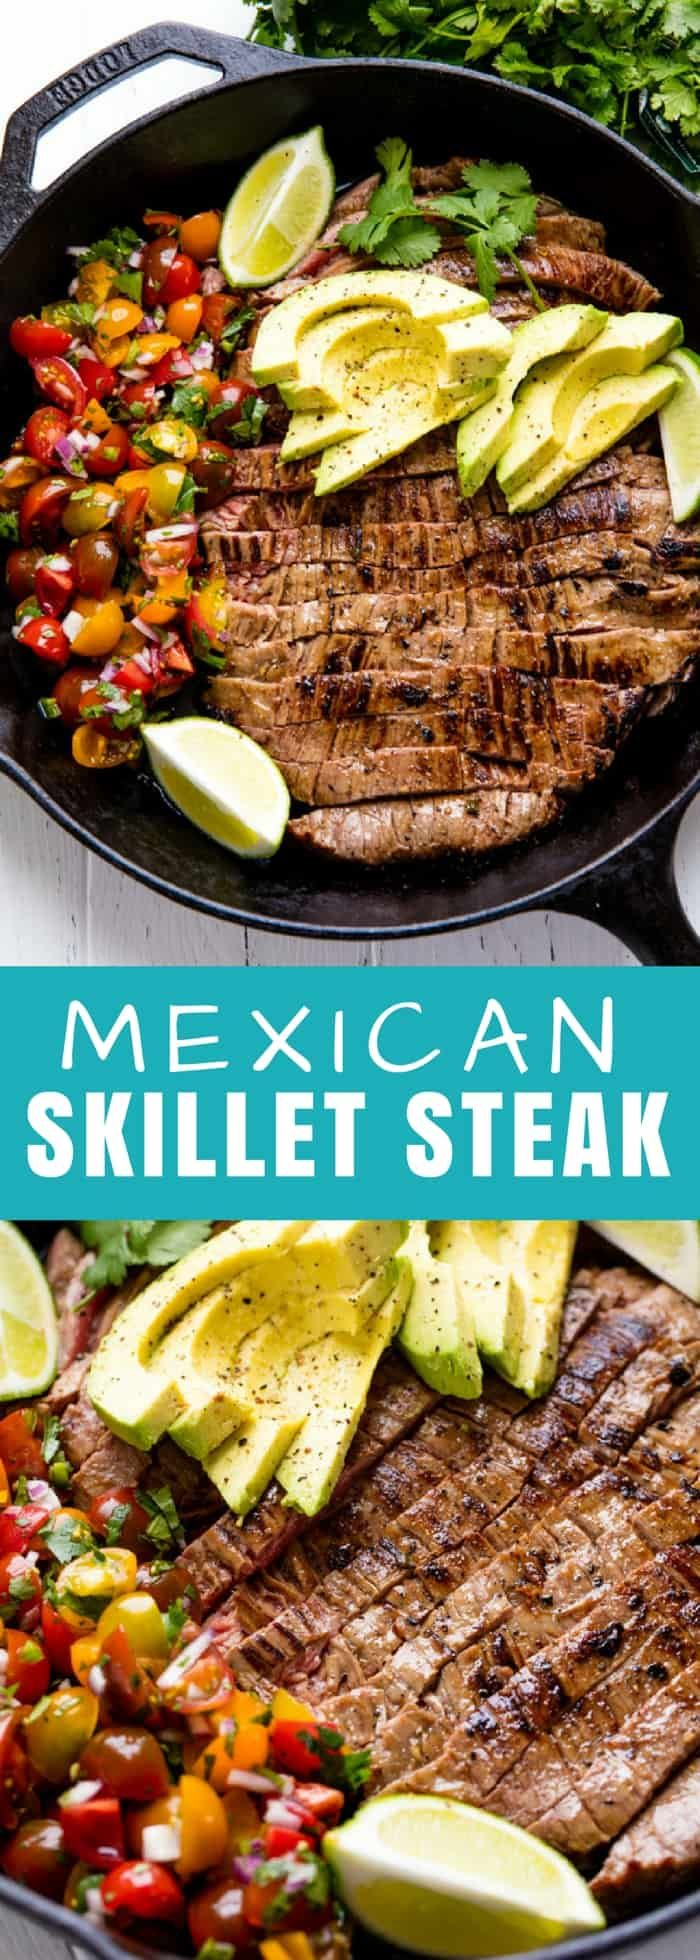 how to cook a steak skillet oven